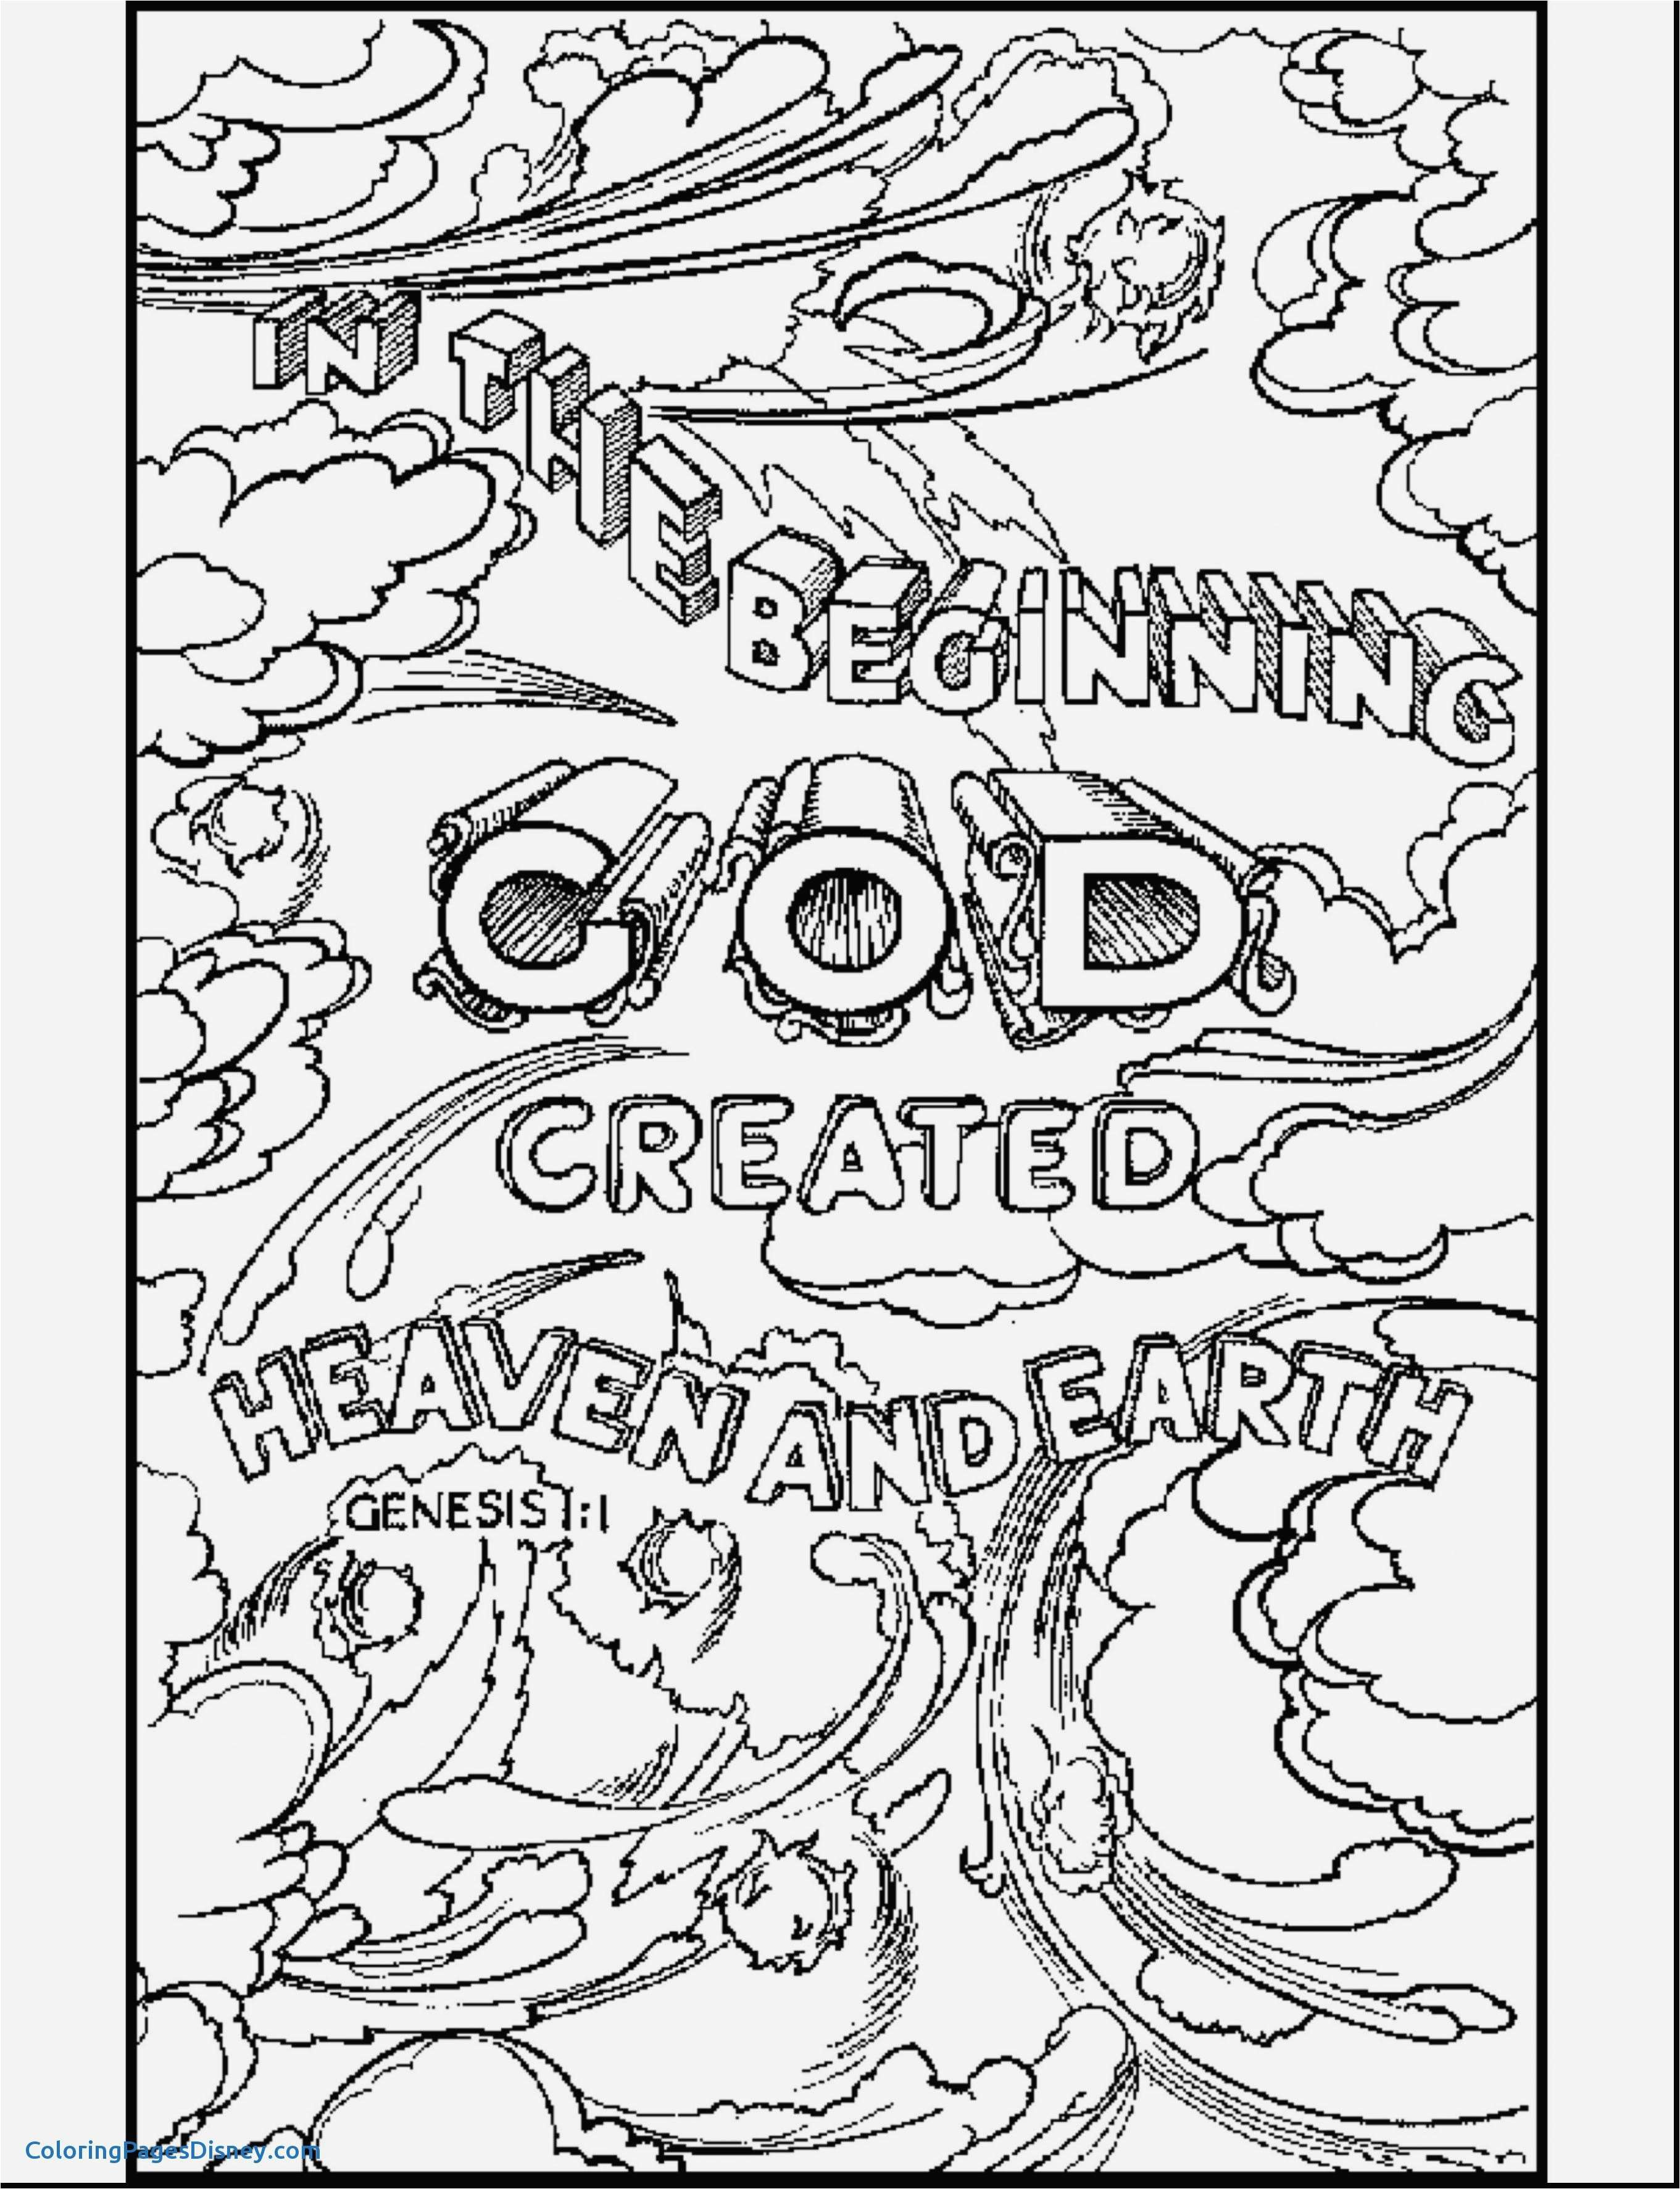 jesus christ coloring pages Collection-Free Free Printable Bible Coloring Pages with Scriptures New Printable Home Coloring Pages Best Color Sheet 2-p